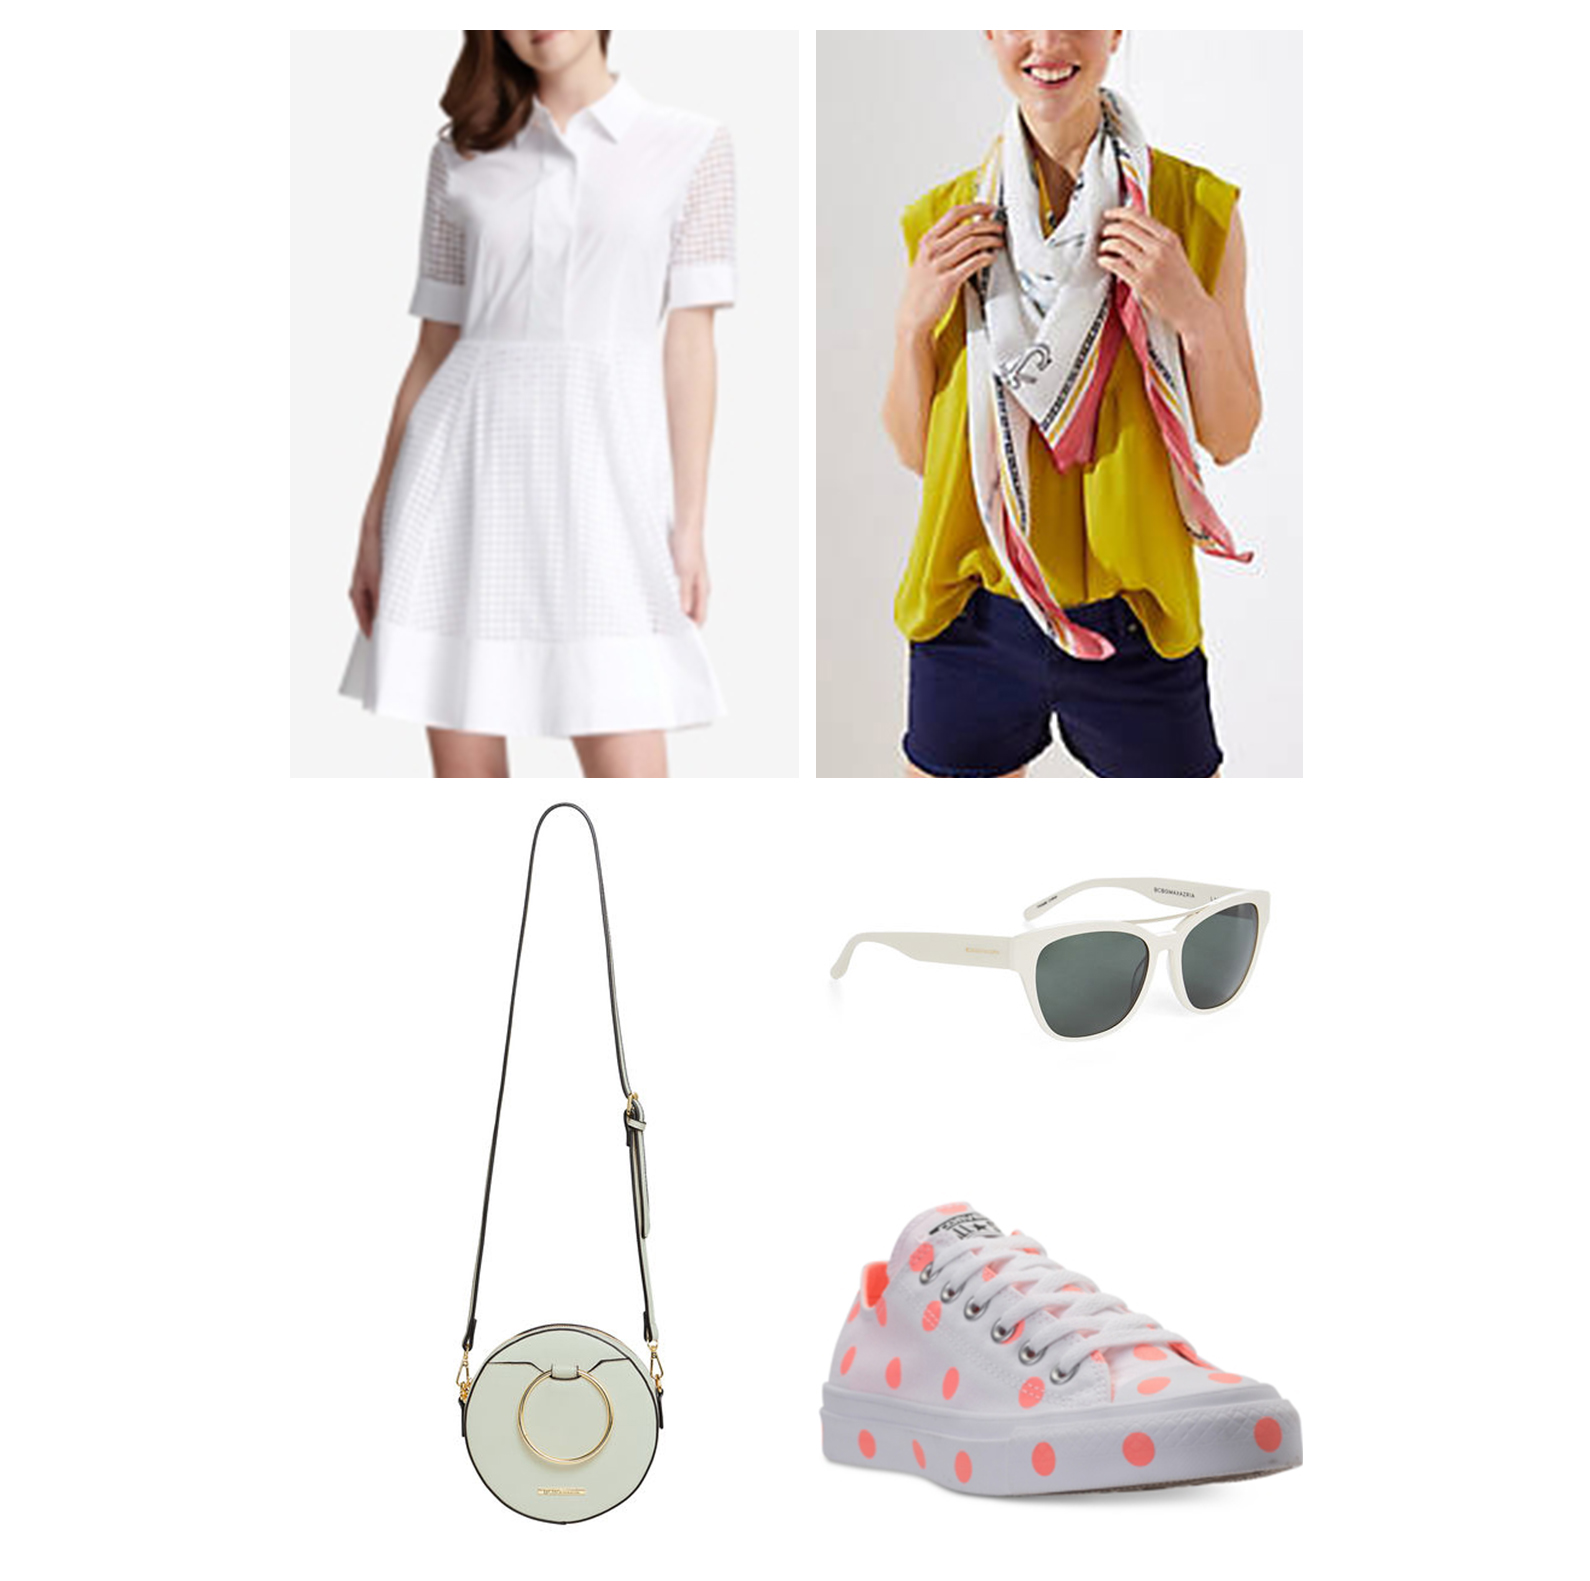 weekend-outfit-white-shirtdress-pastel-accessories.jpg